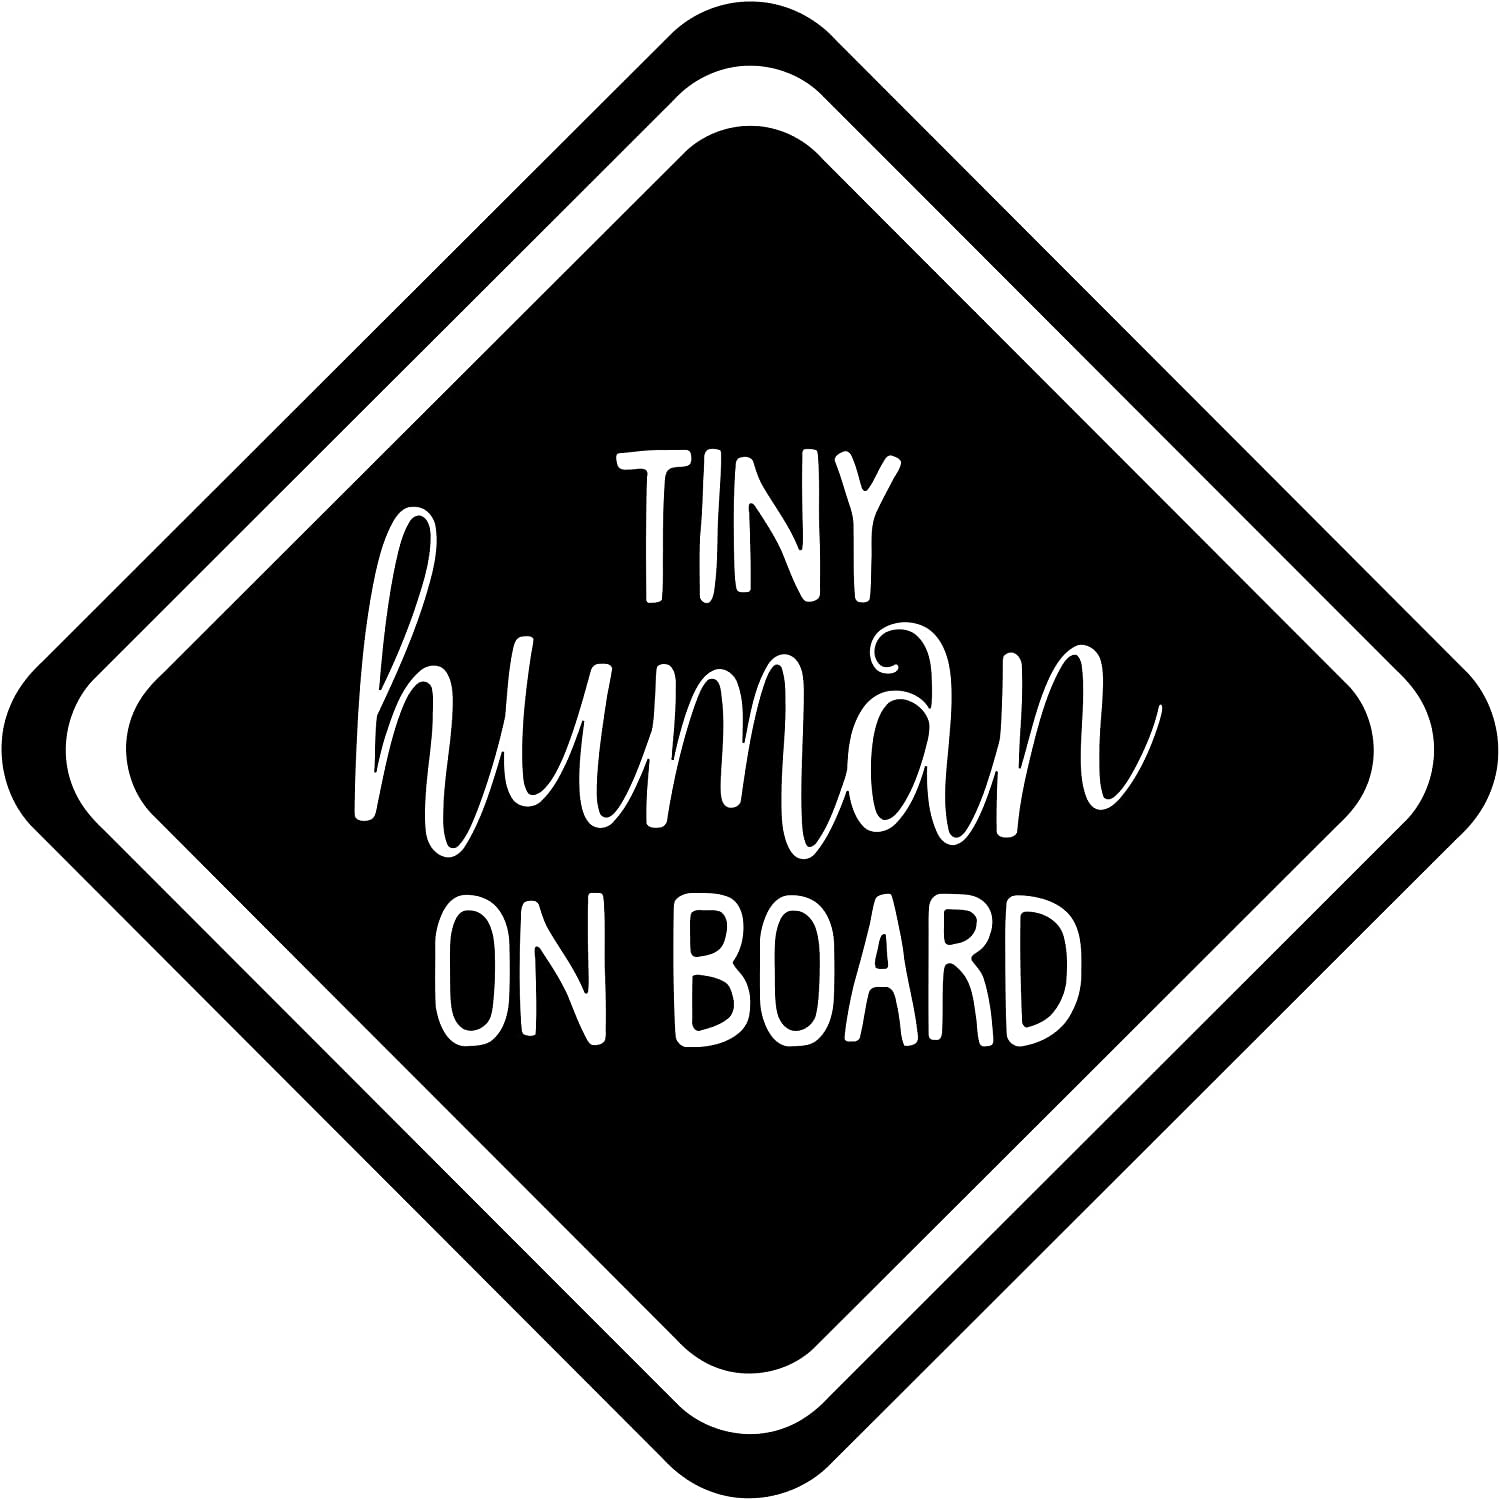 Tiny Human On Board- decal sticker window decal Vinyl Decal car decal